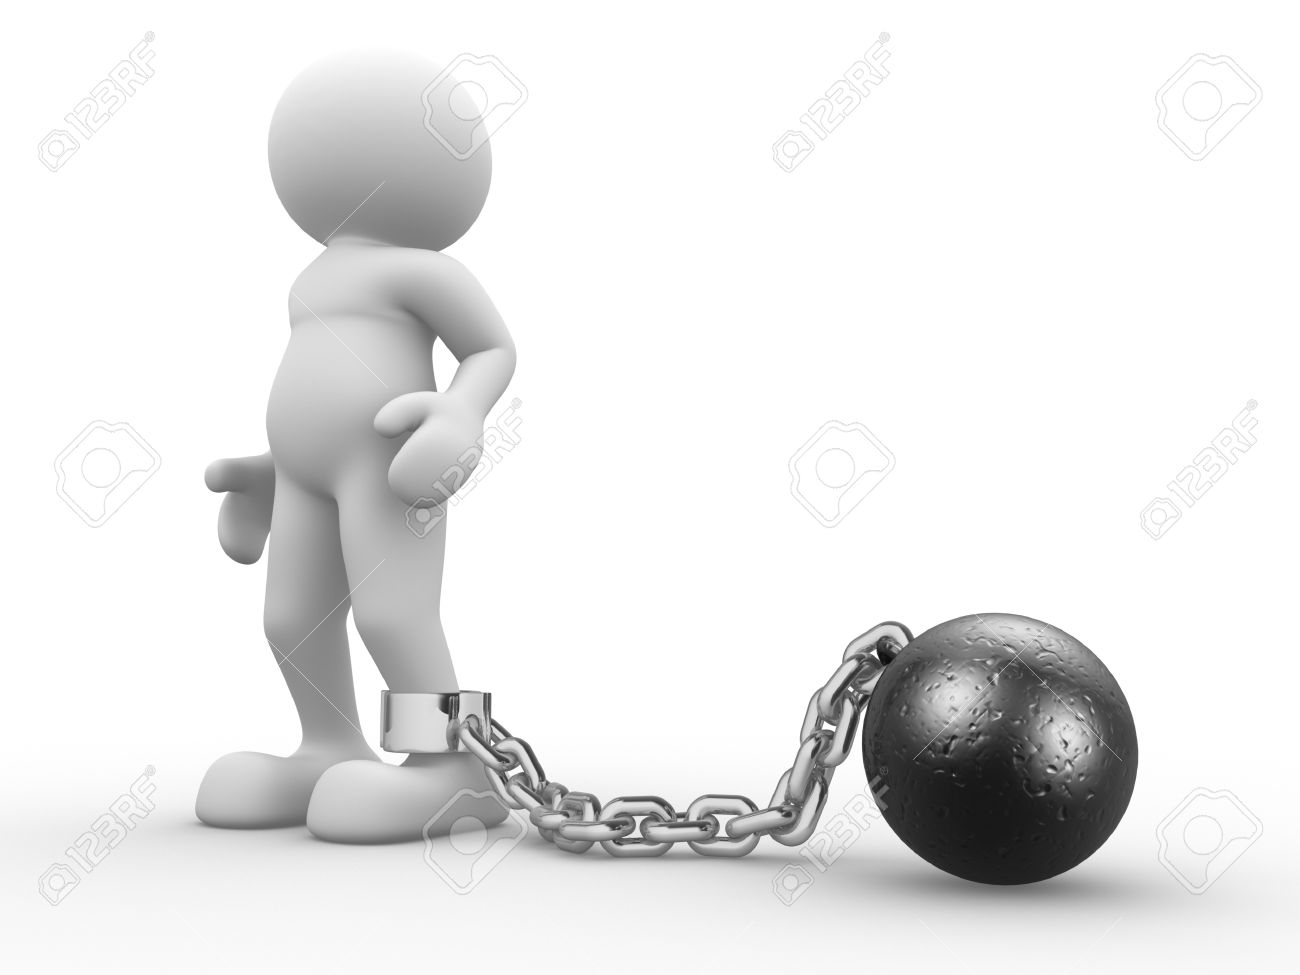 3d people human character with ball chain prisoner 3d render